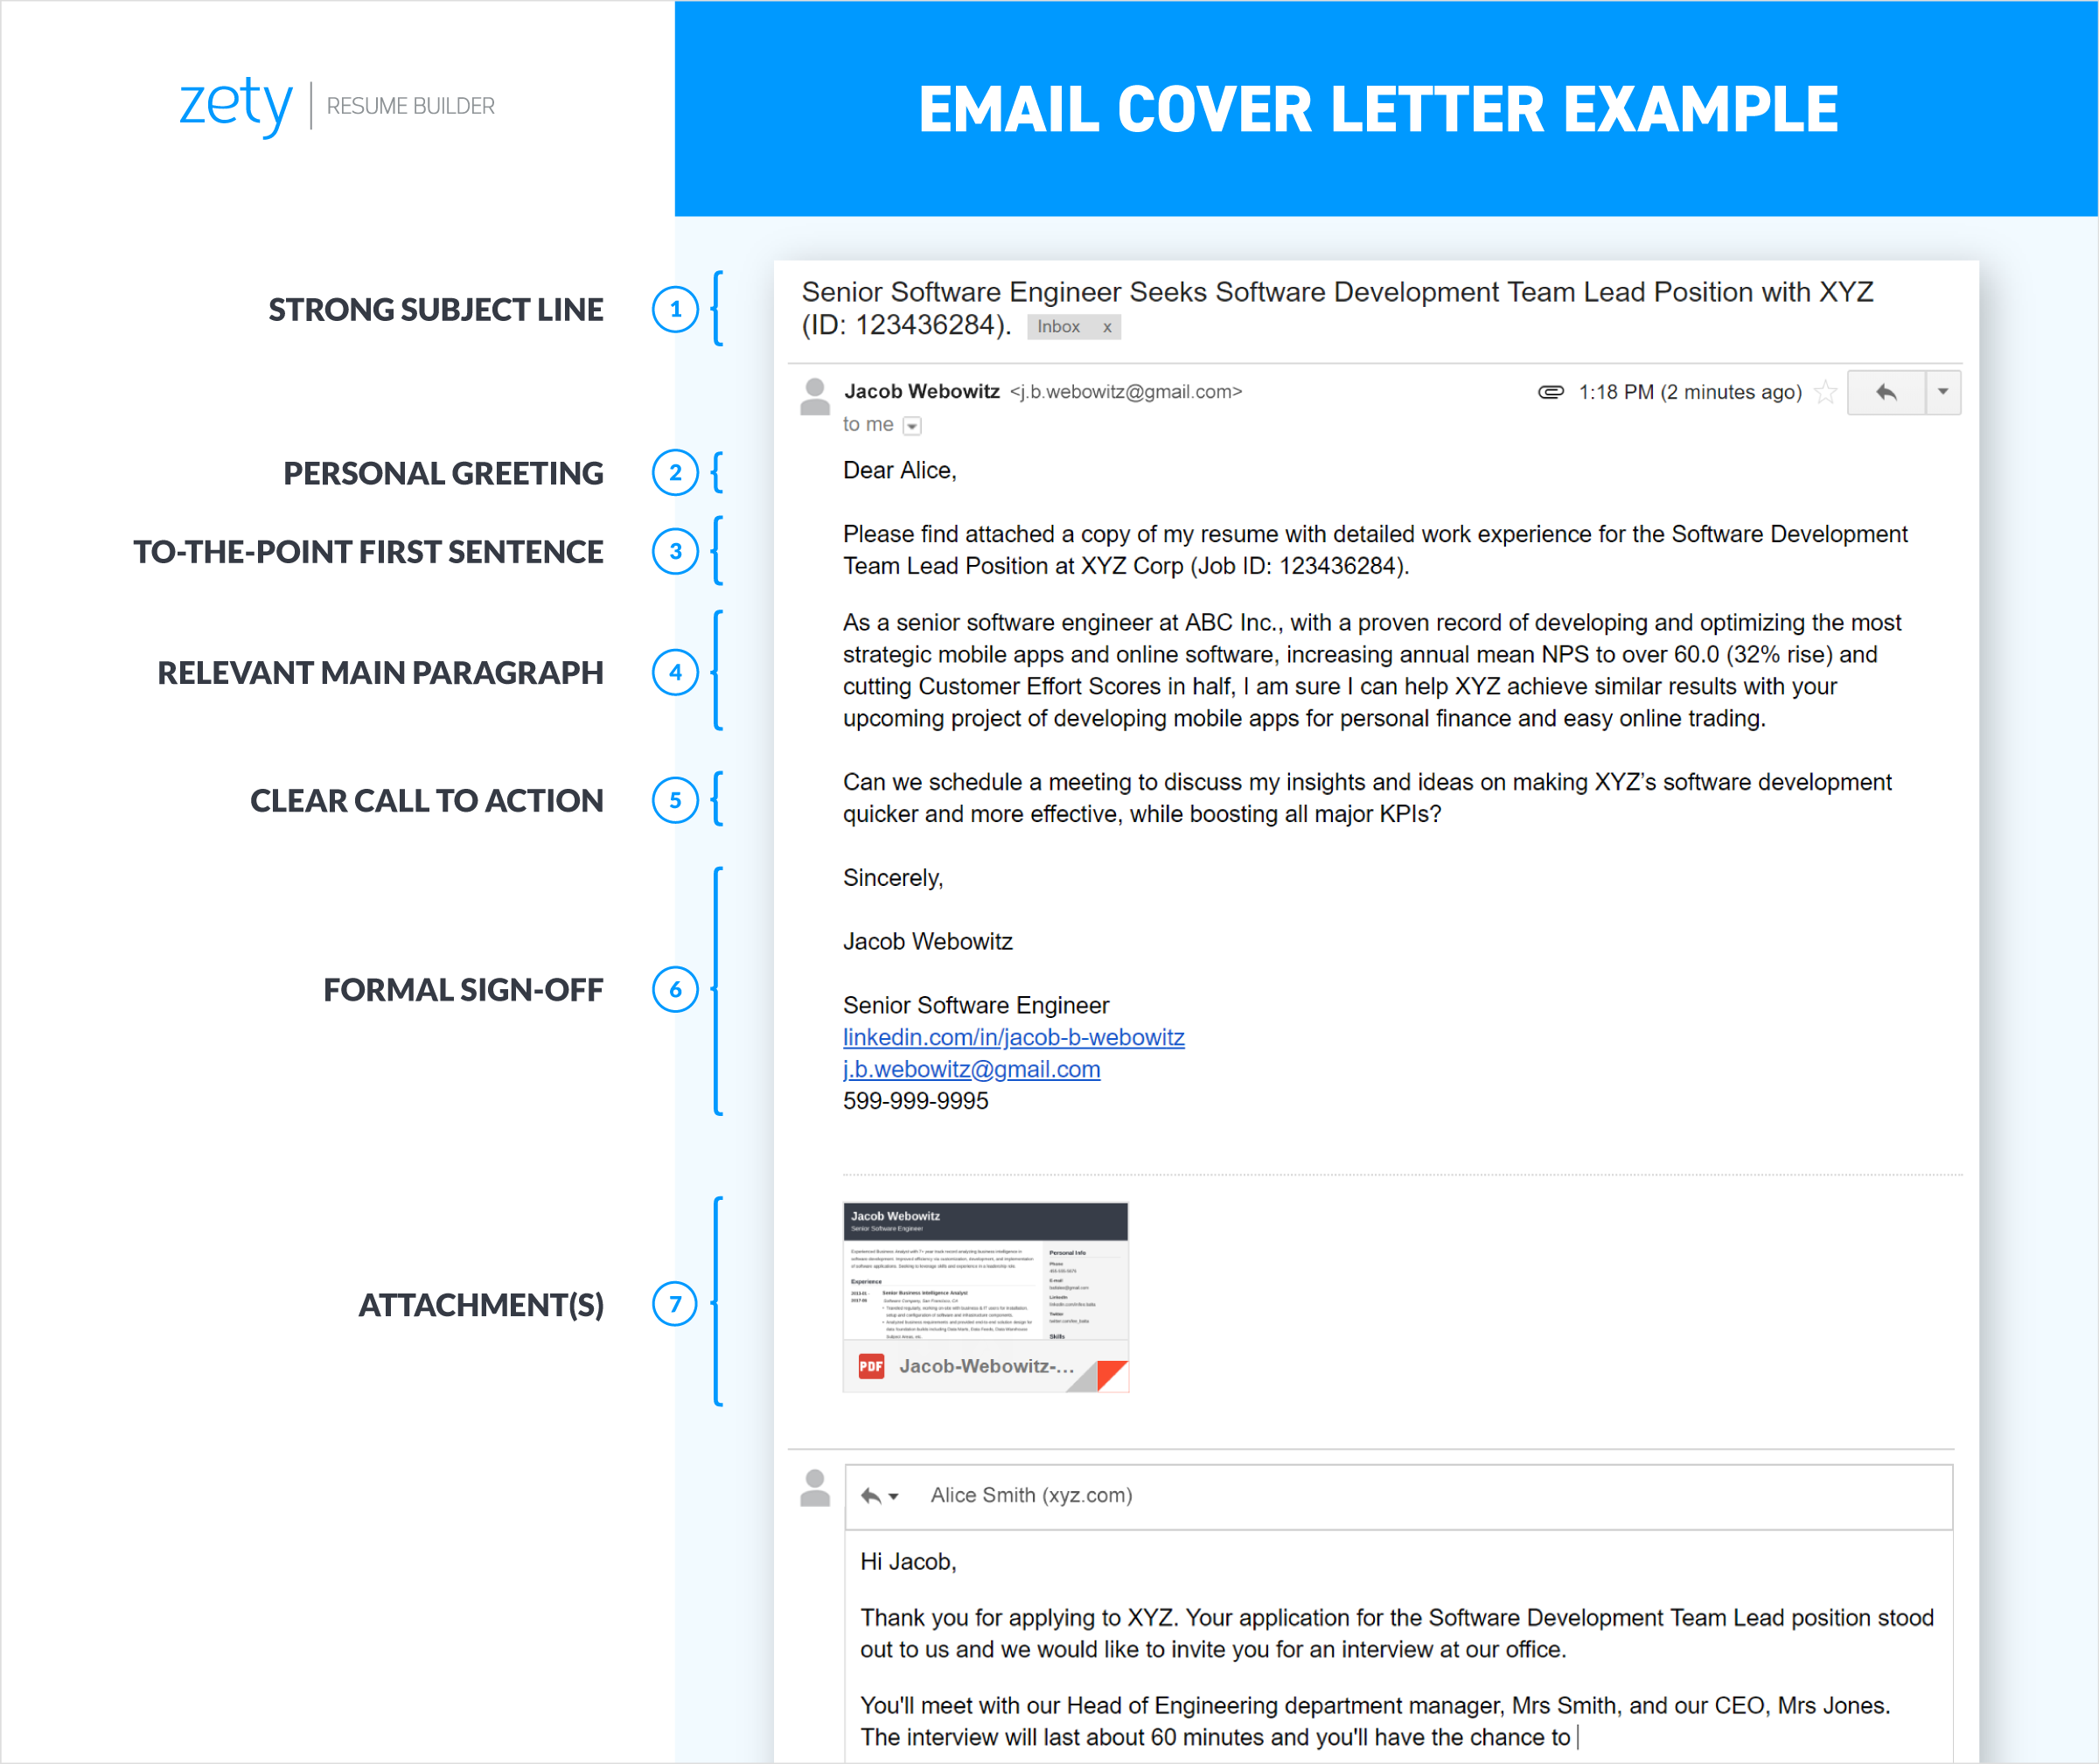 Email Cover Letter Sample Proper Email Format 20 Tips Infographic